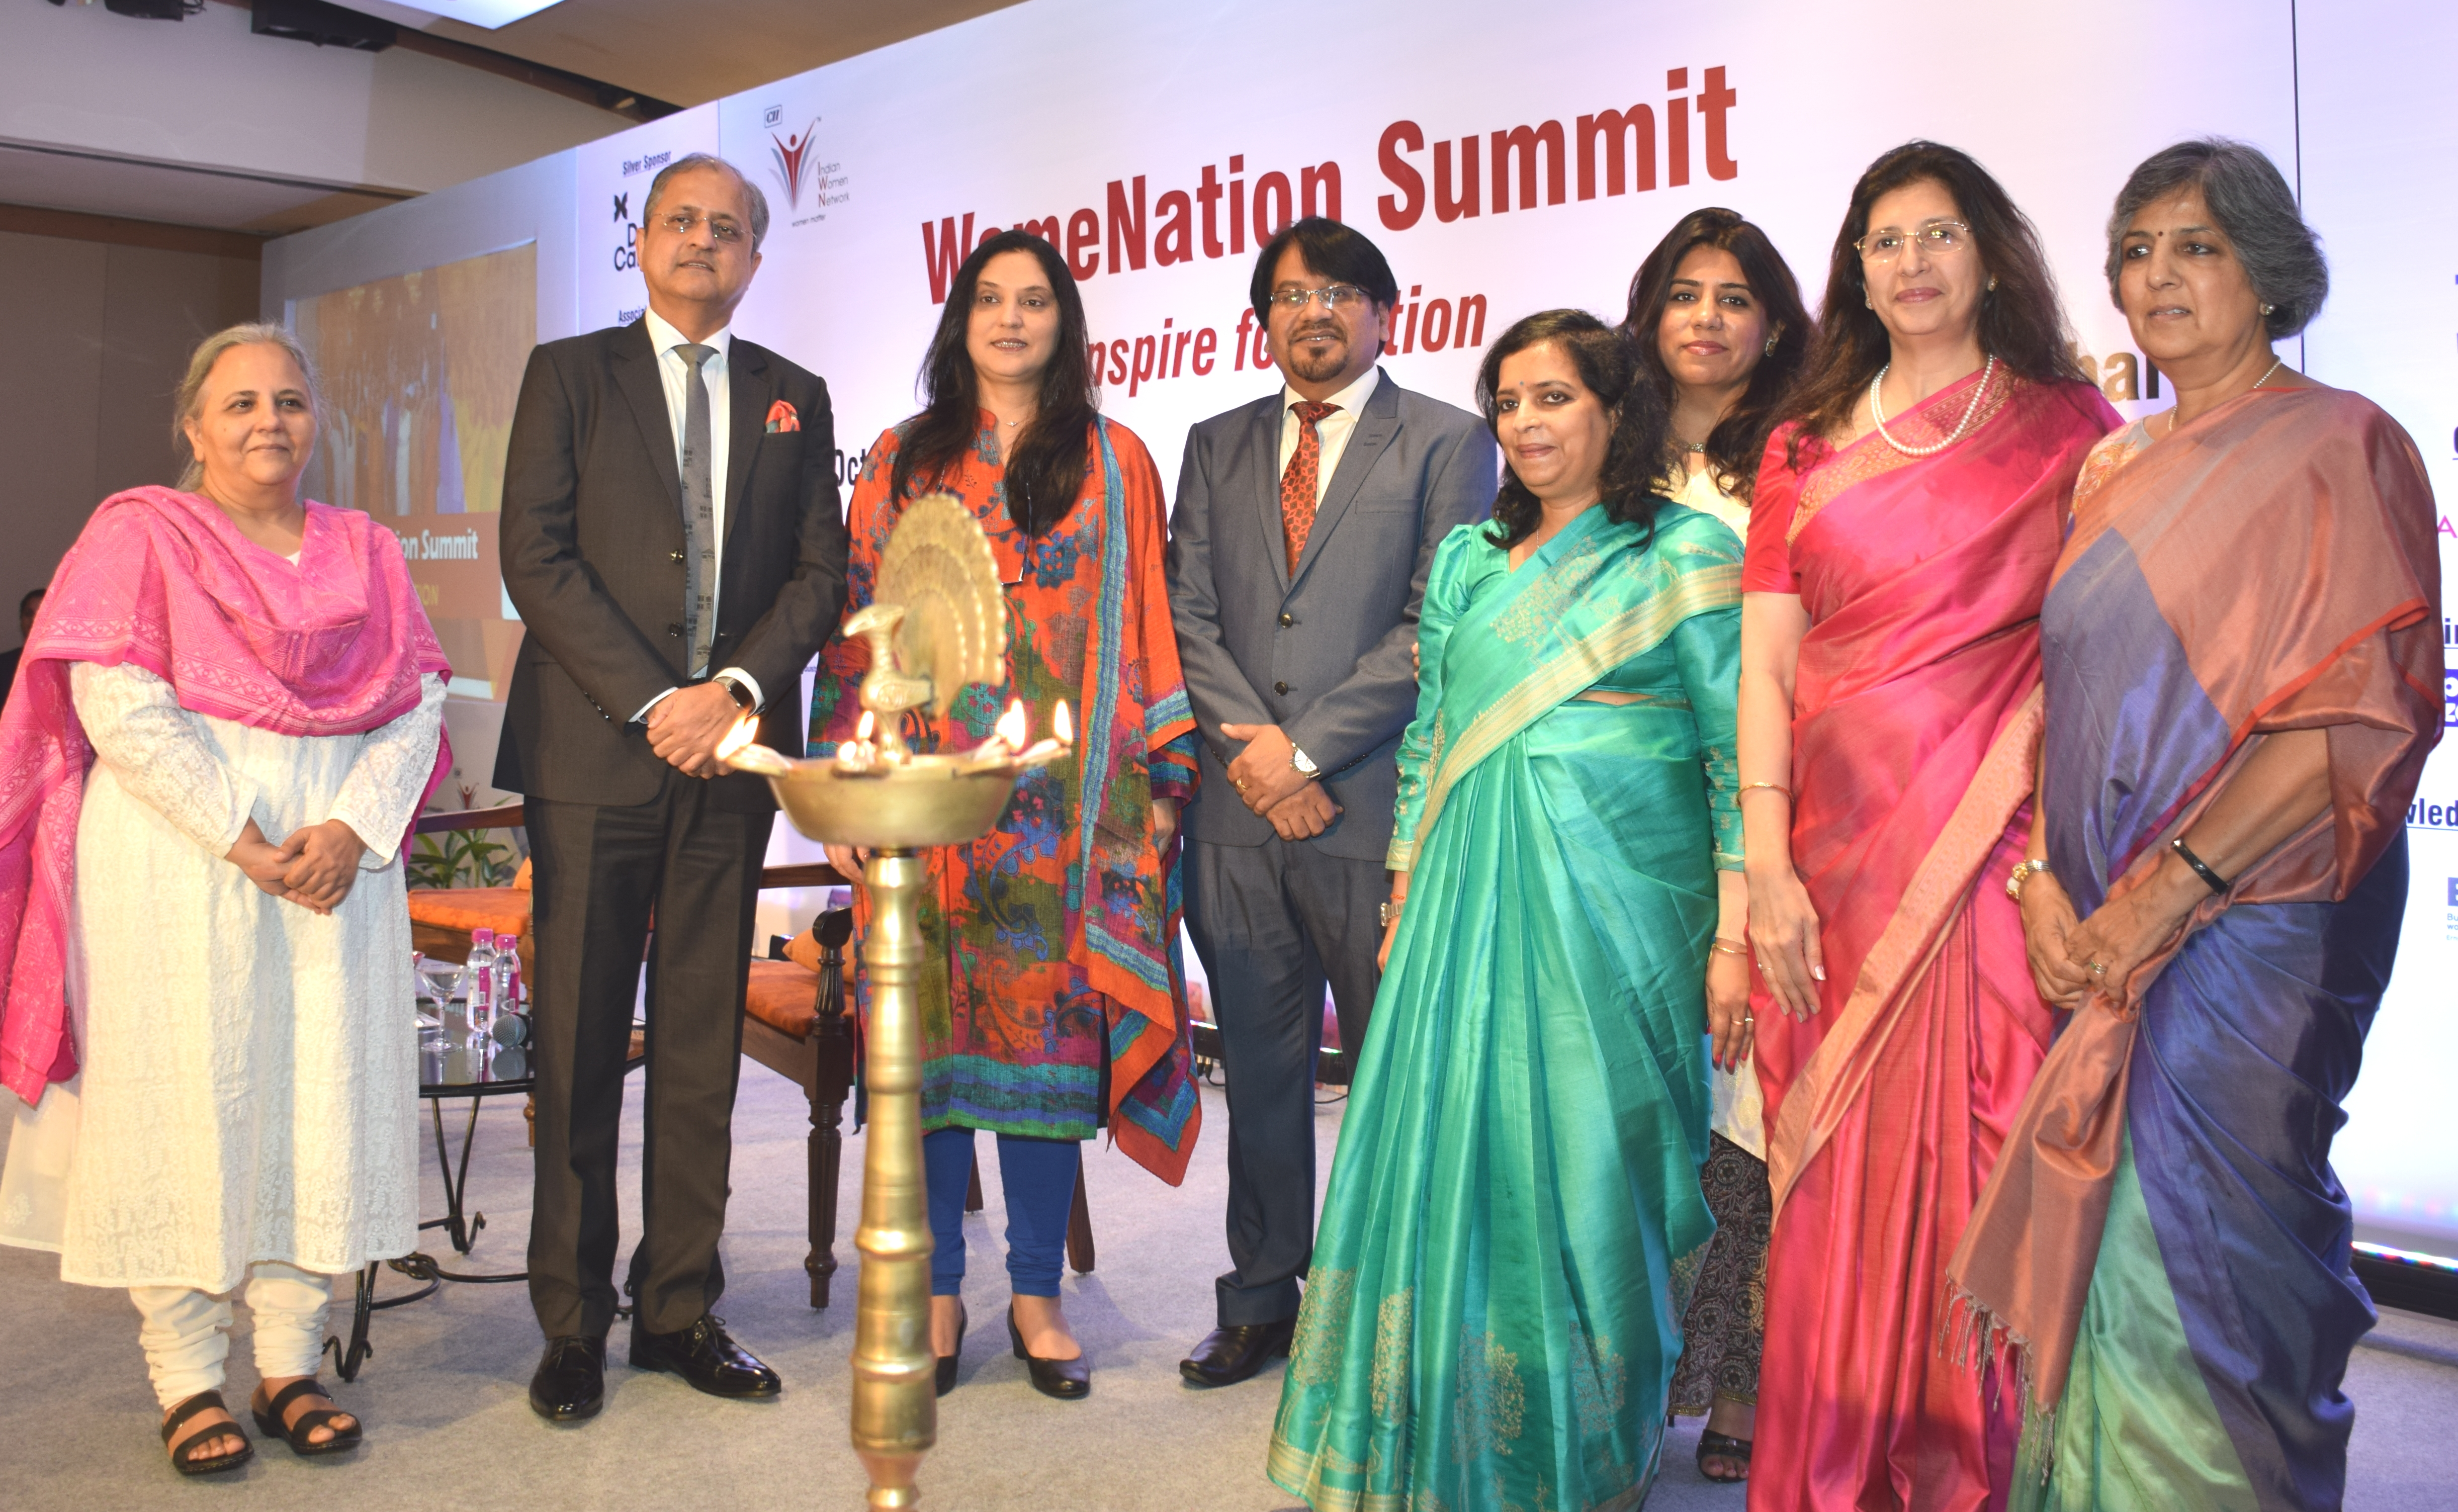 CII IWN WR - 2nd WomeNation Summit: Inspire for Action